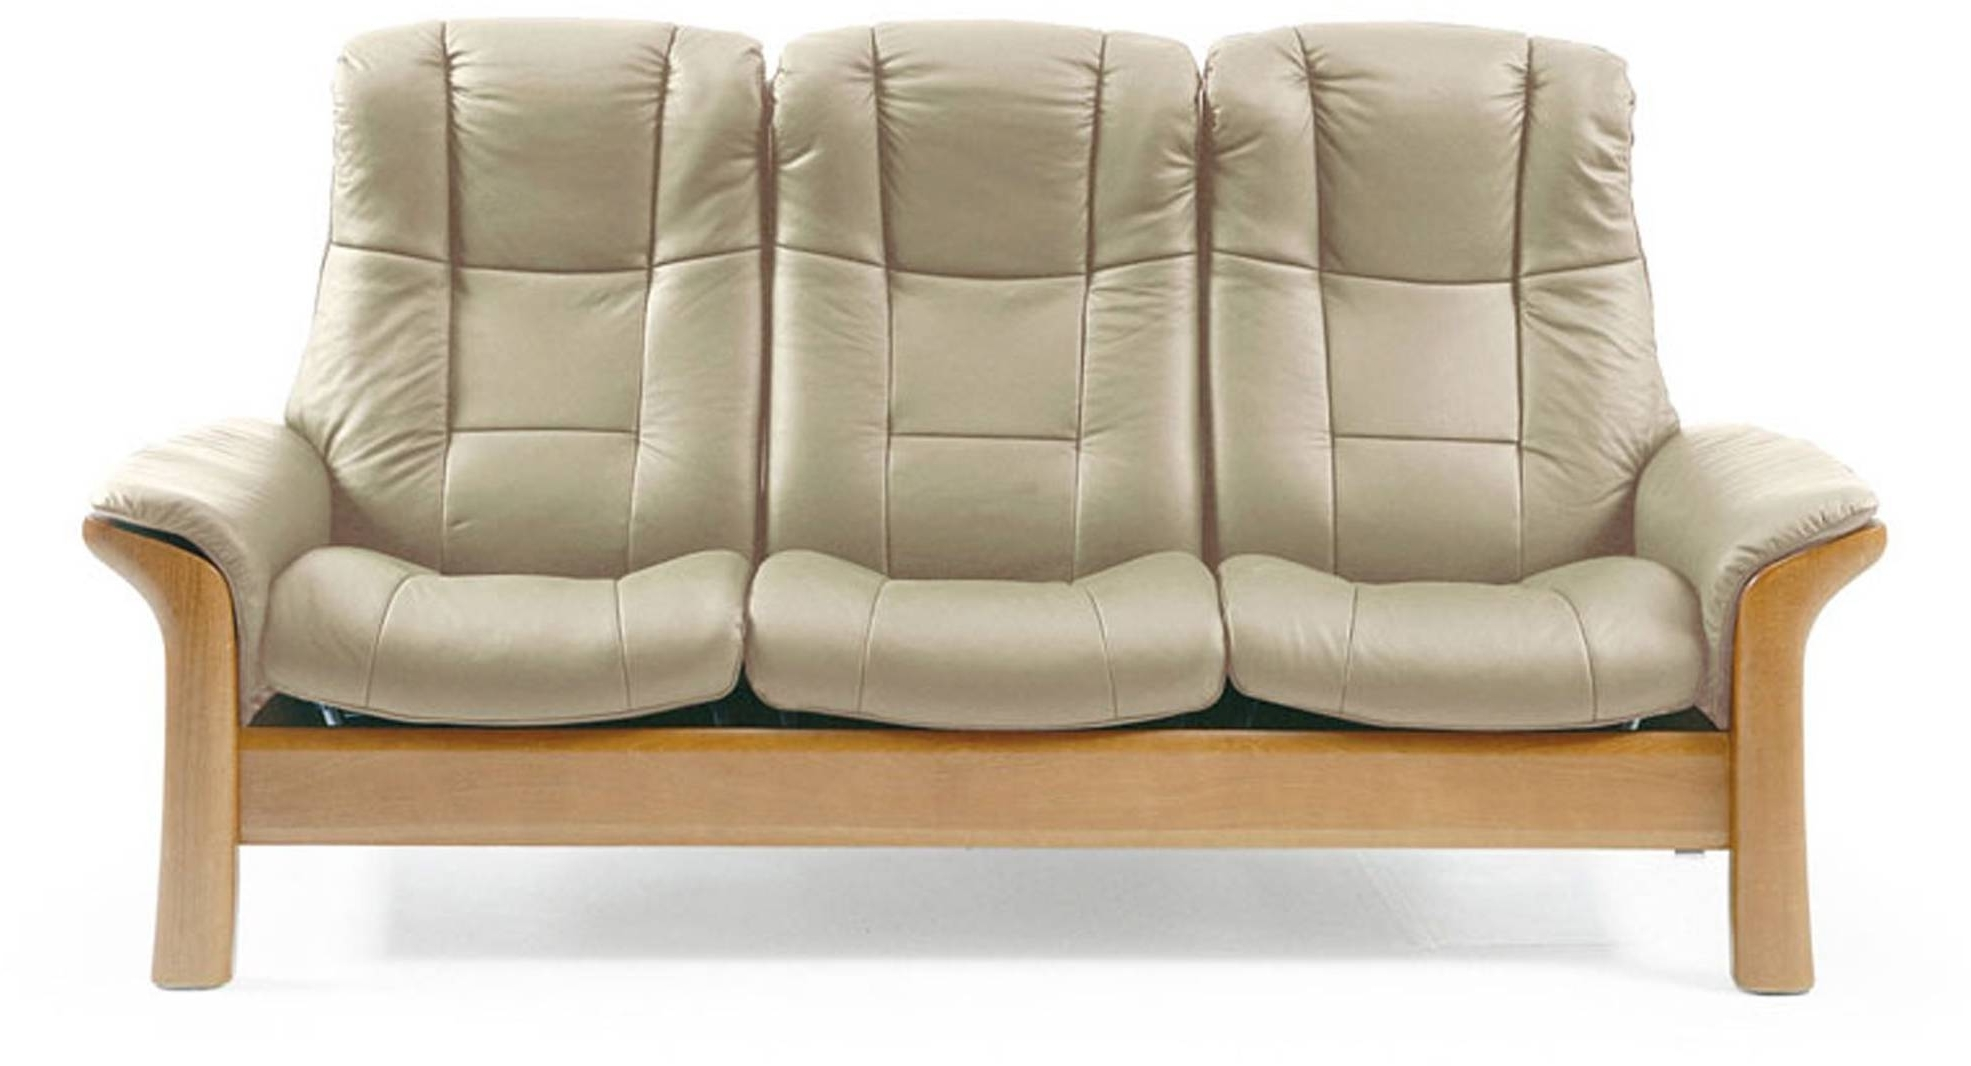 Stressless Windsor High Back 3 Seater Sofa – 3 Seater Sofas Intended For Well Liked Windsor Sofas (View 8 of 15)